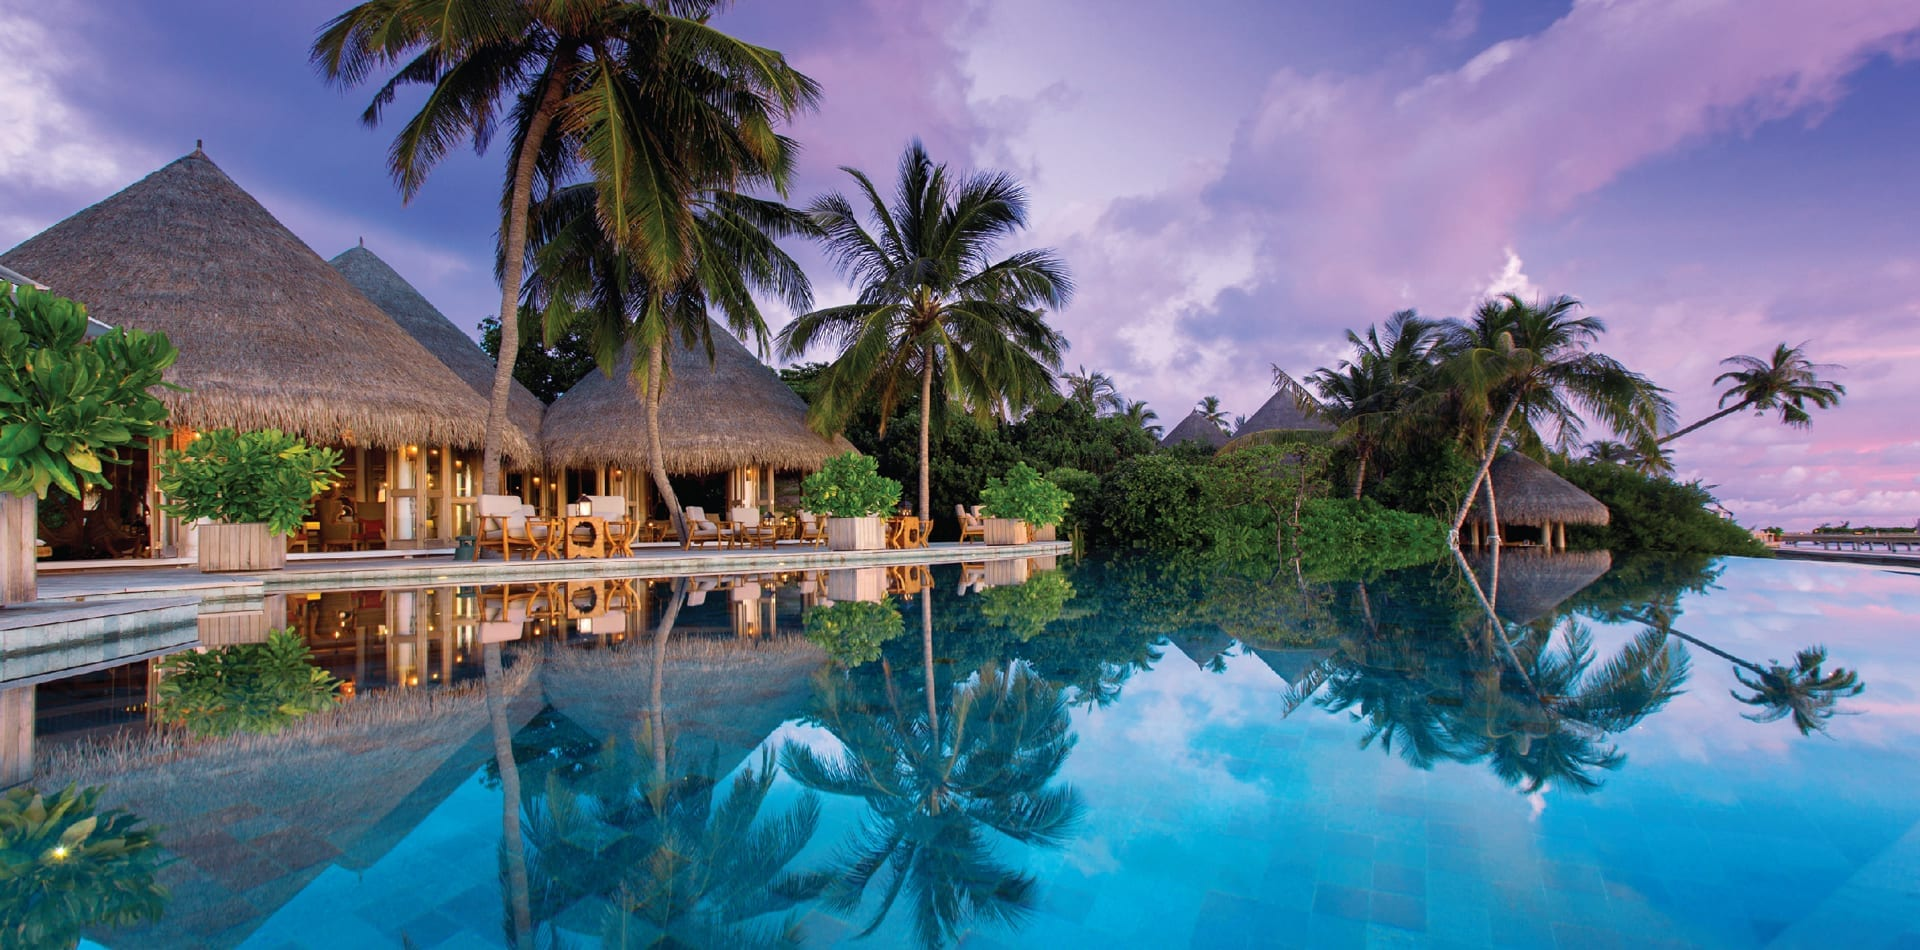 maldives milaidhoo island swimming pool